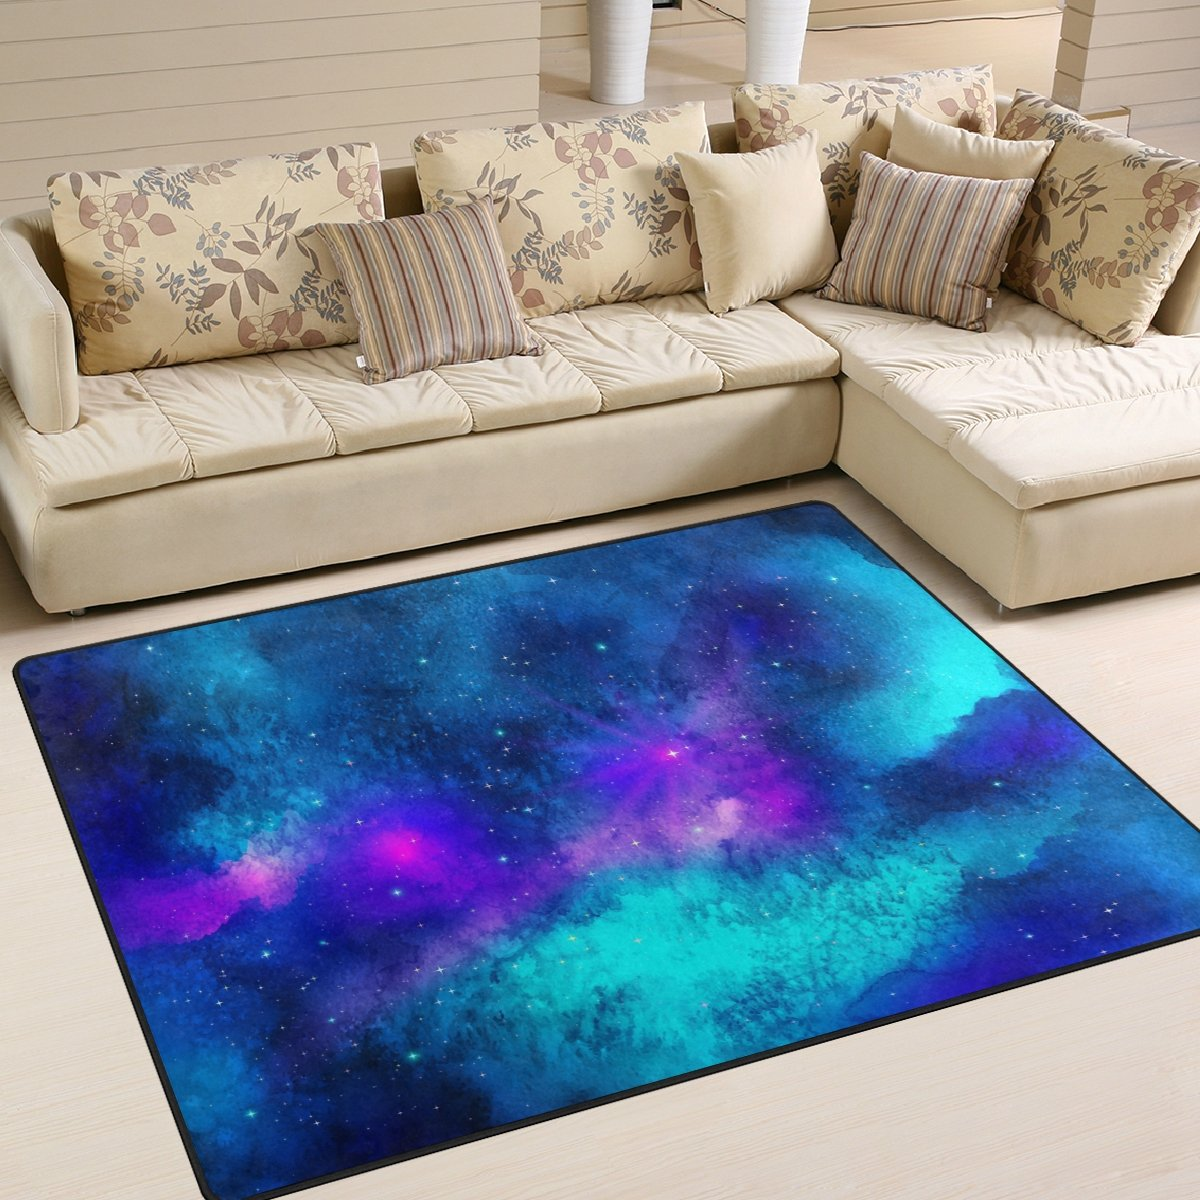 Aideess Triangulum Galaxy Outer Space Area Rugs for Living Room Bedroom 5'3''x4', Kids Children Carpet Rug Non-Slip Floor Mat Resting Area Doormats